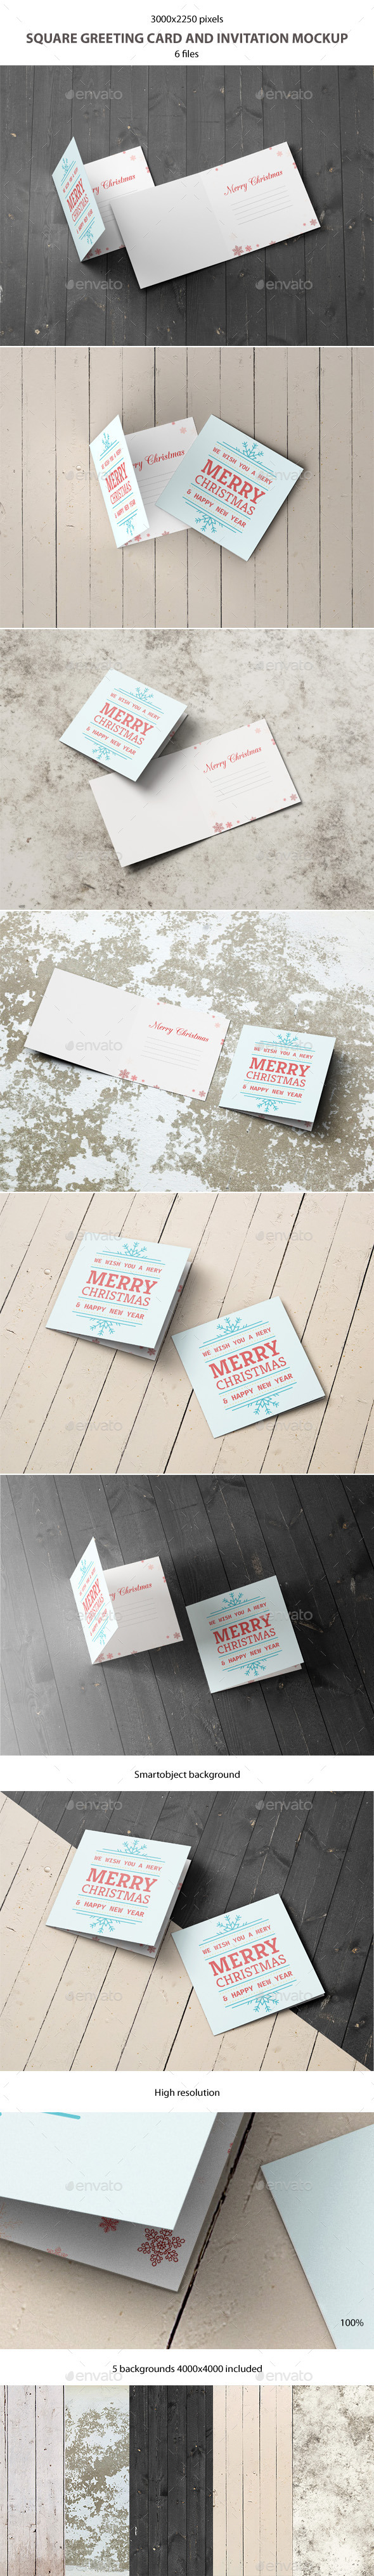 GraphicRiver Square Greeting Card and Invitation Mockup 9284803